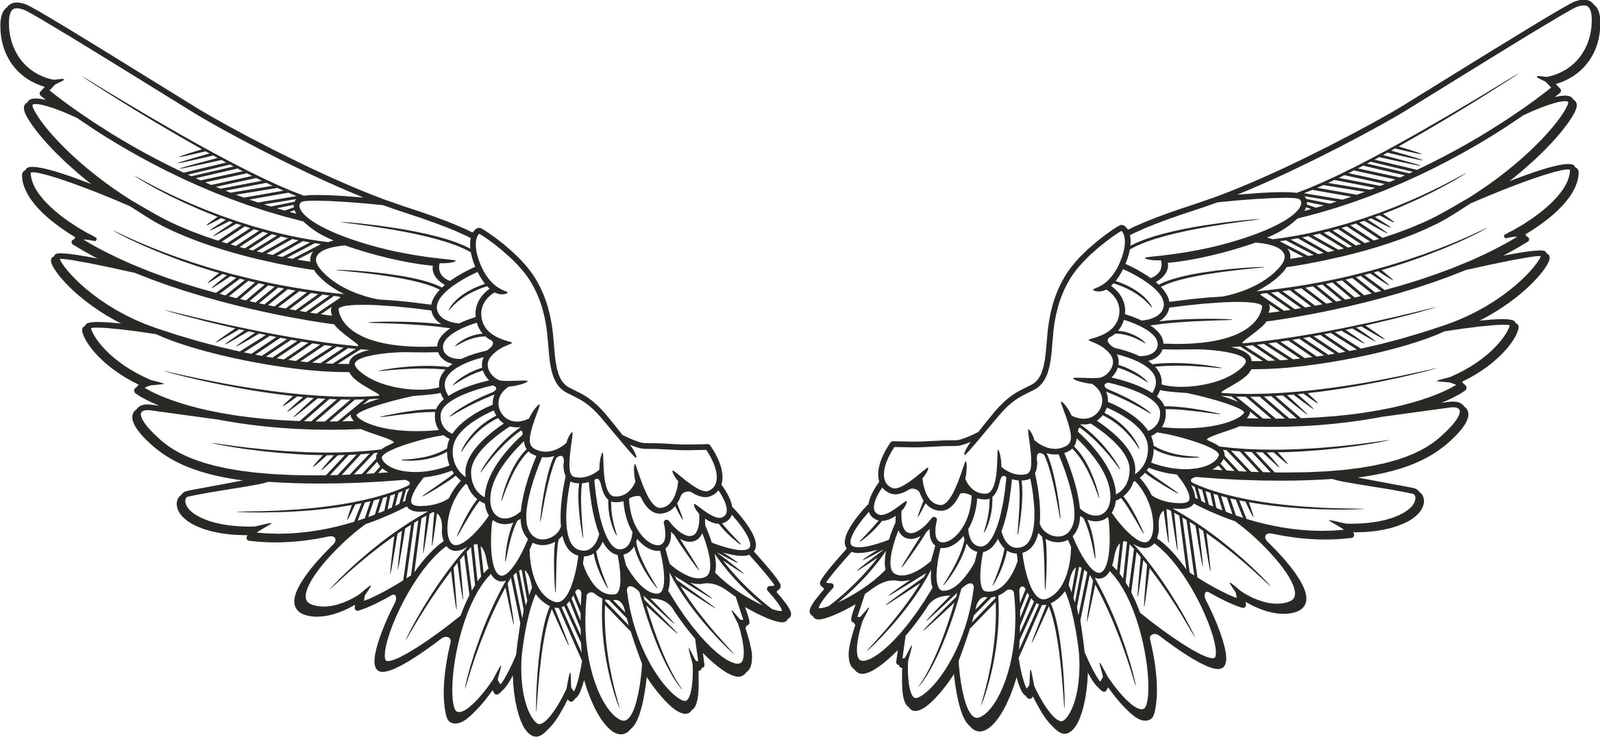 Line Drawing Wings : Angel wing drawing at getdrawings free for personal